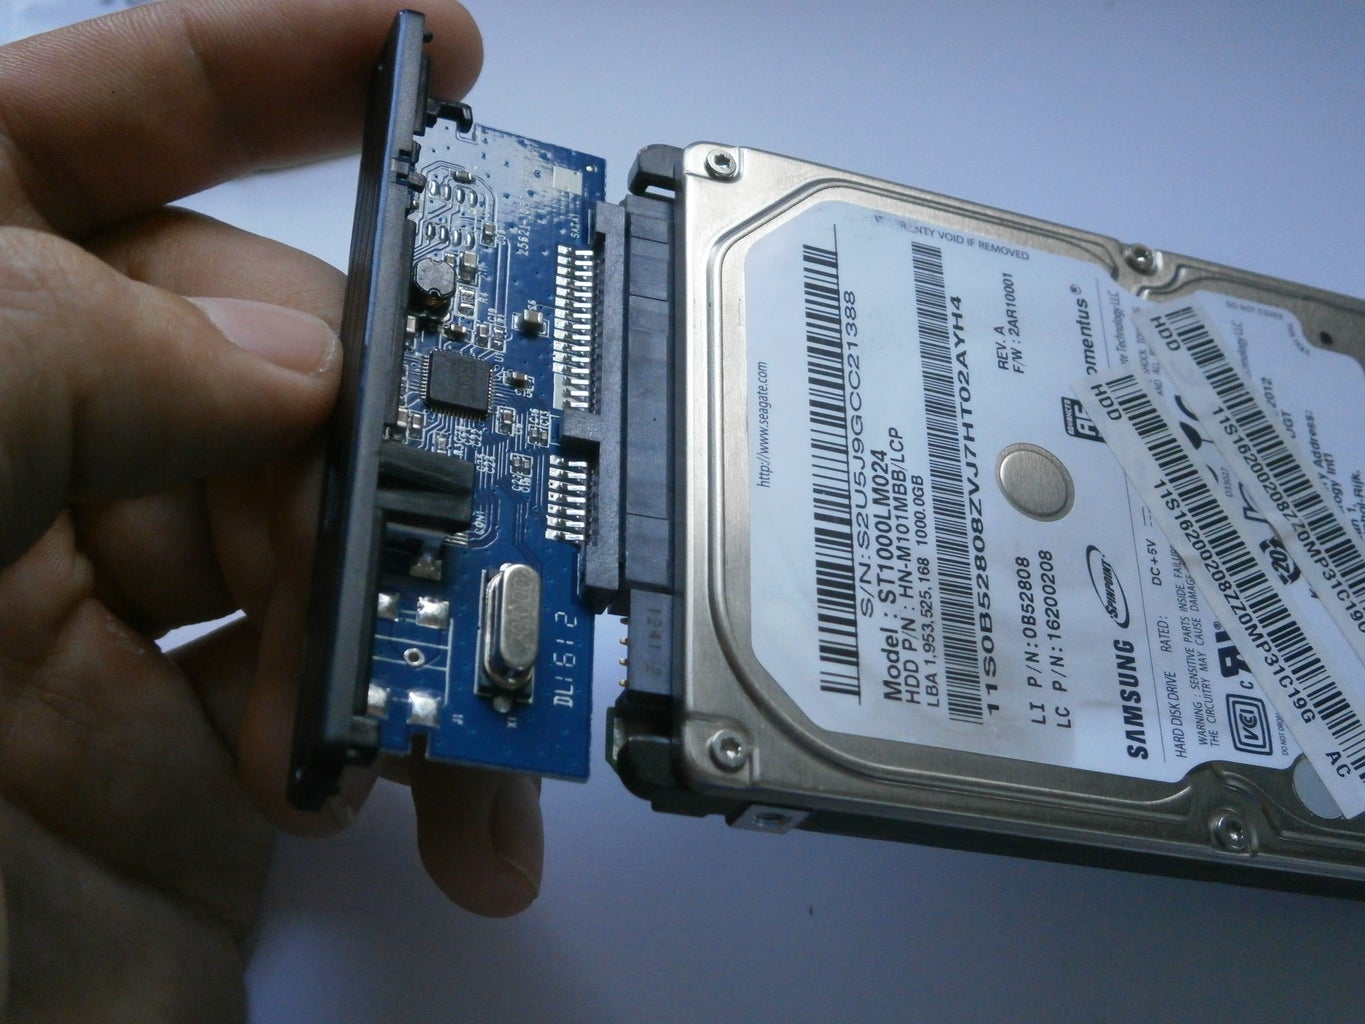 Put the HDD in the Box